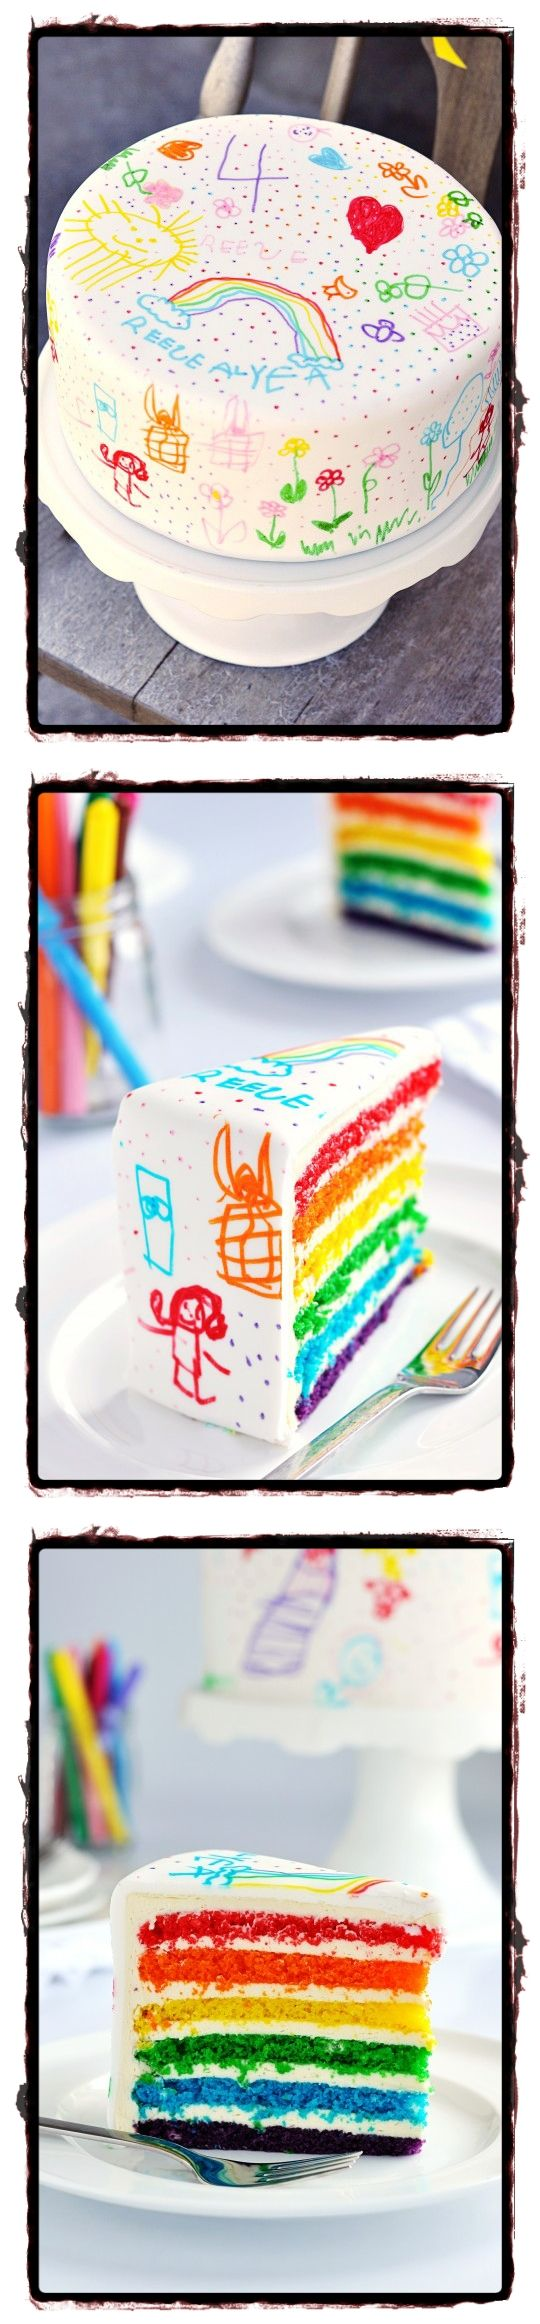 le doodle cake un g teau d 39 anniversaire repr sentant un dessin d 39 enfant couleurs arc en ciel. Black Bedroom Furniture Sets. Home Design Ideas